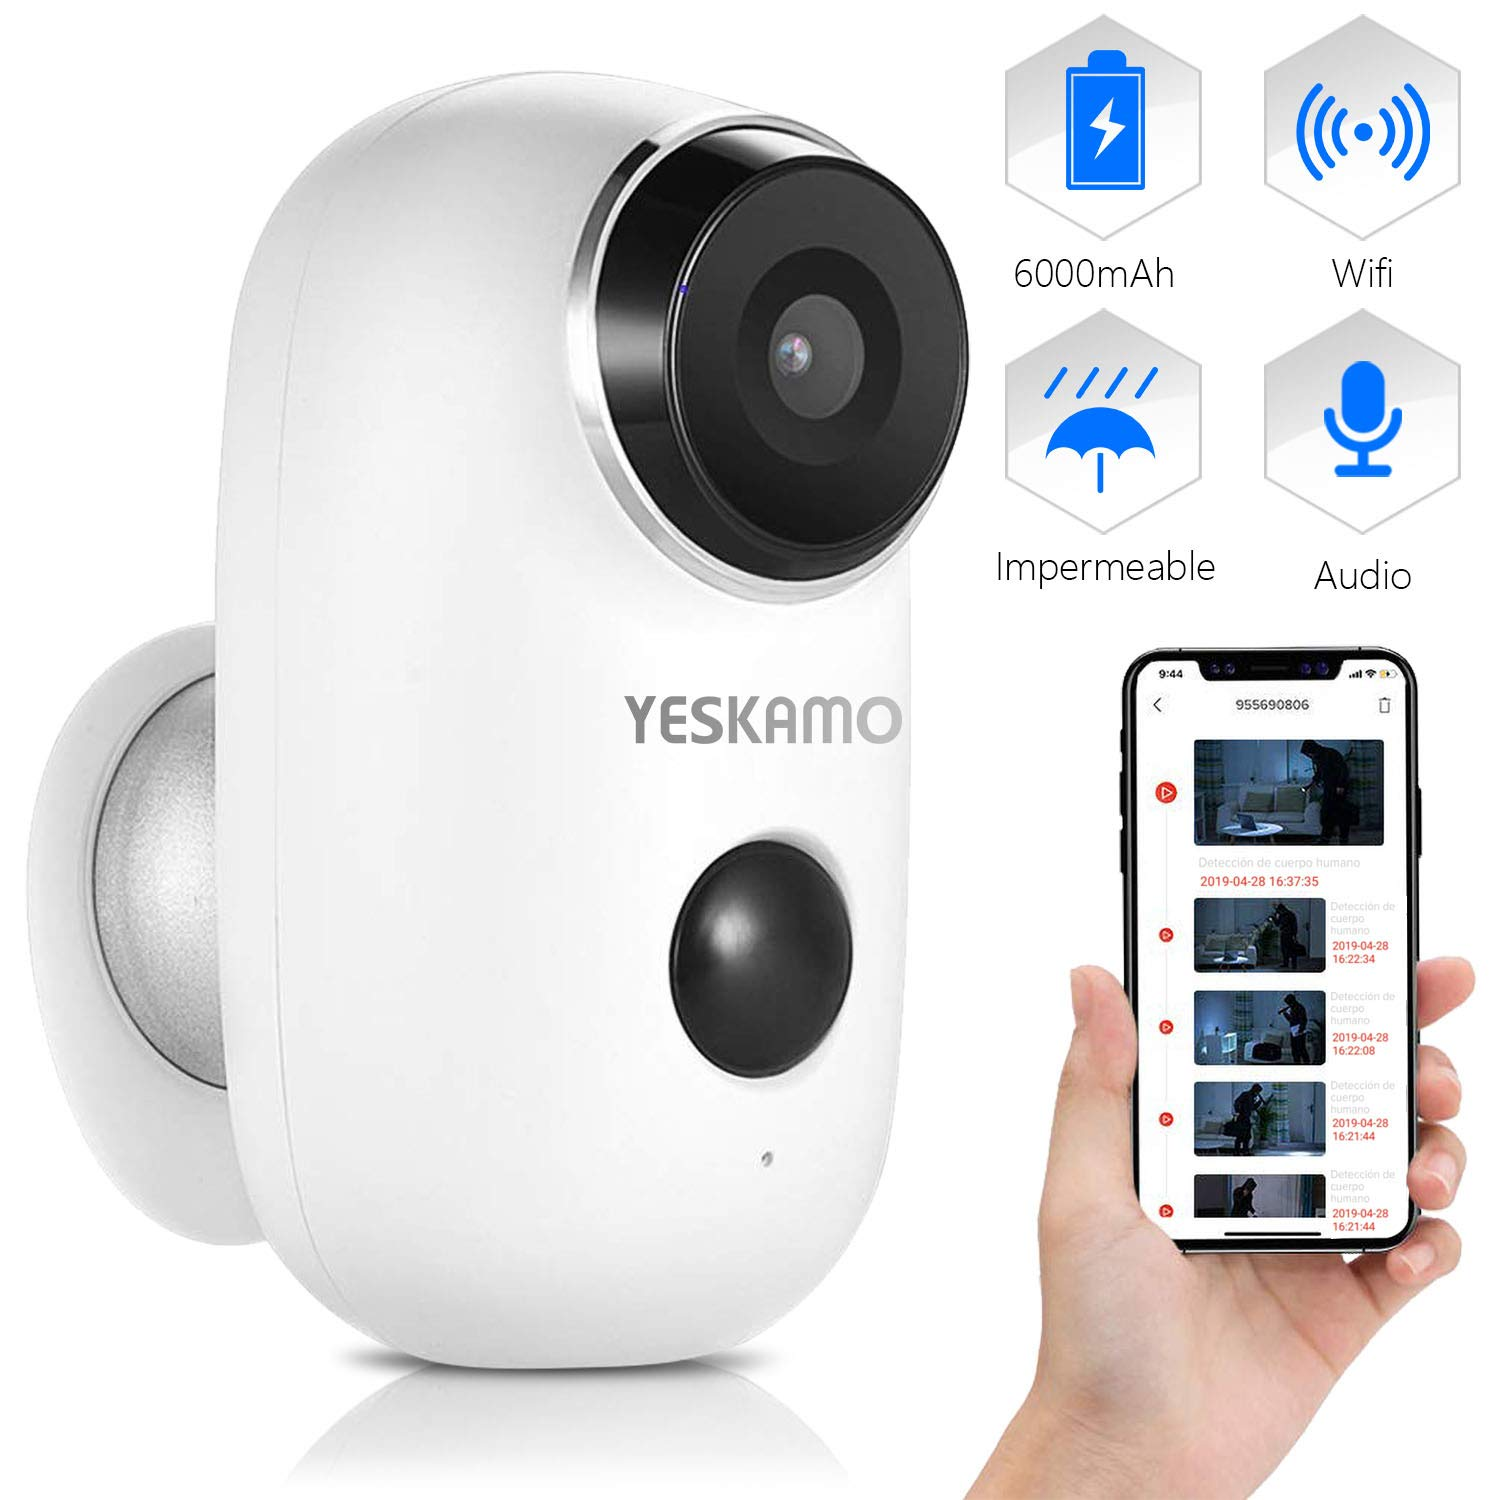 Wireless Battery Powered Security Camera for Home, House Video Surveillance Camera Outdoor WiFi Camera with Audio, YESKAMO Wire Free IP Camera PIR Motion Detection